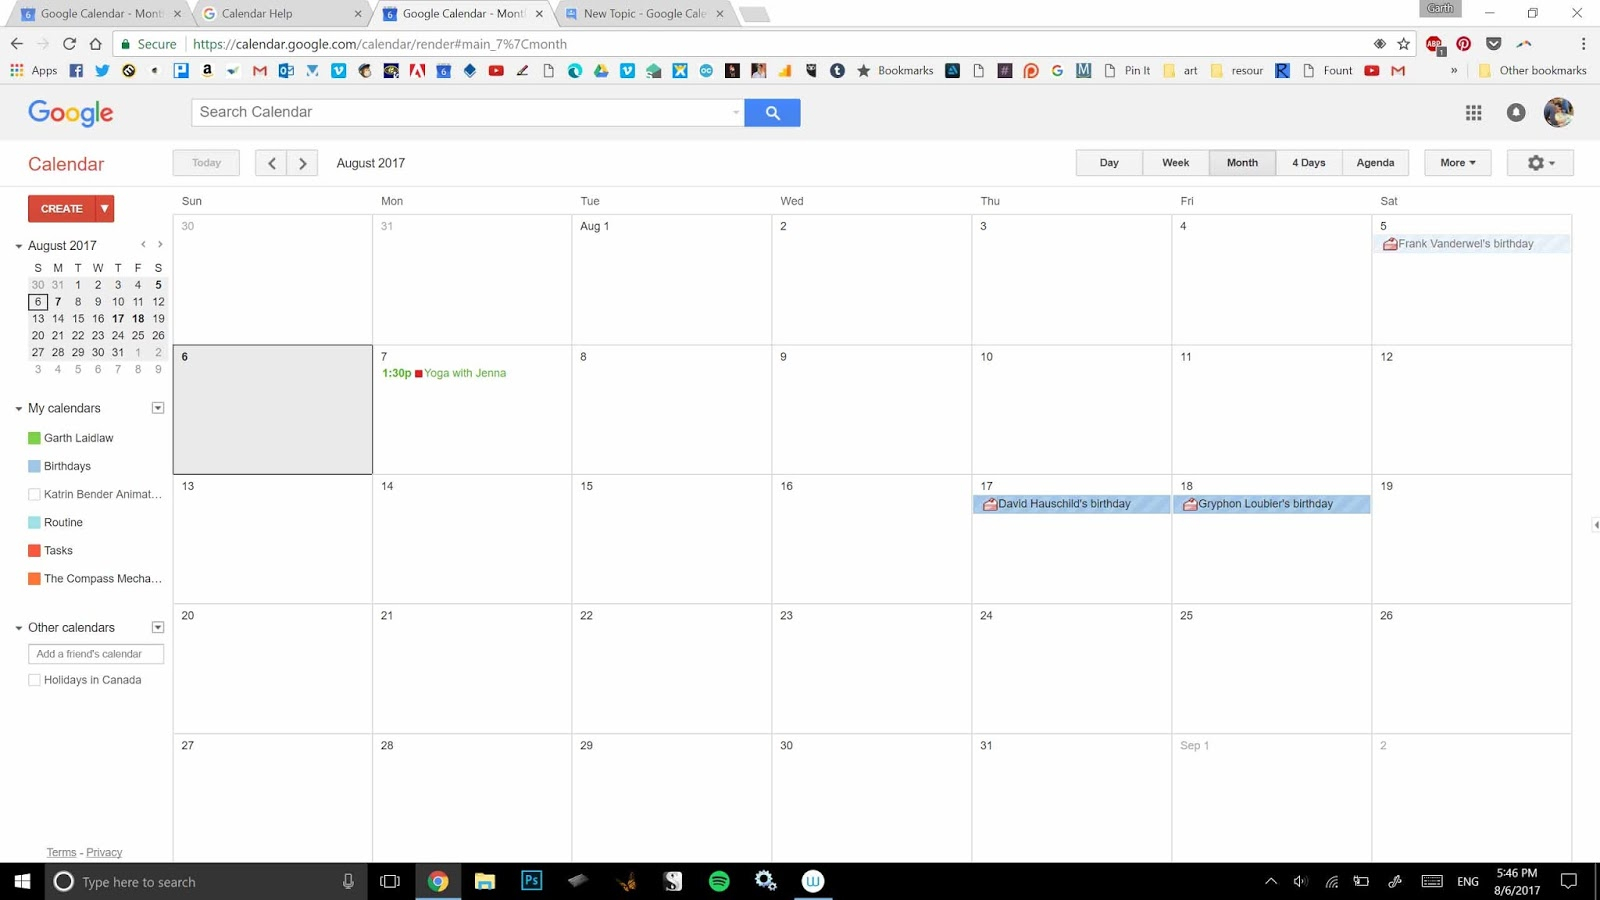 All Events On Calendar Seem To Be Deleted  Cправка  Календарь with How To Restore Deleted Google Calendar Events